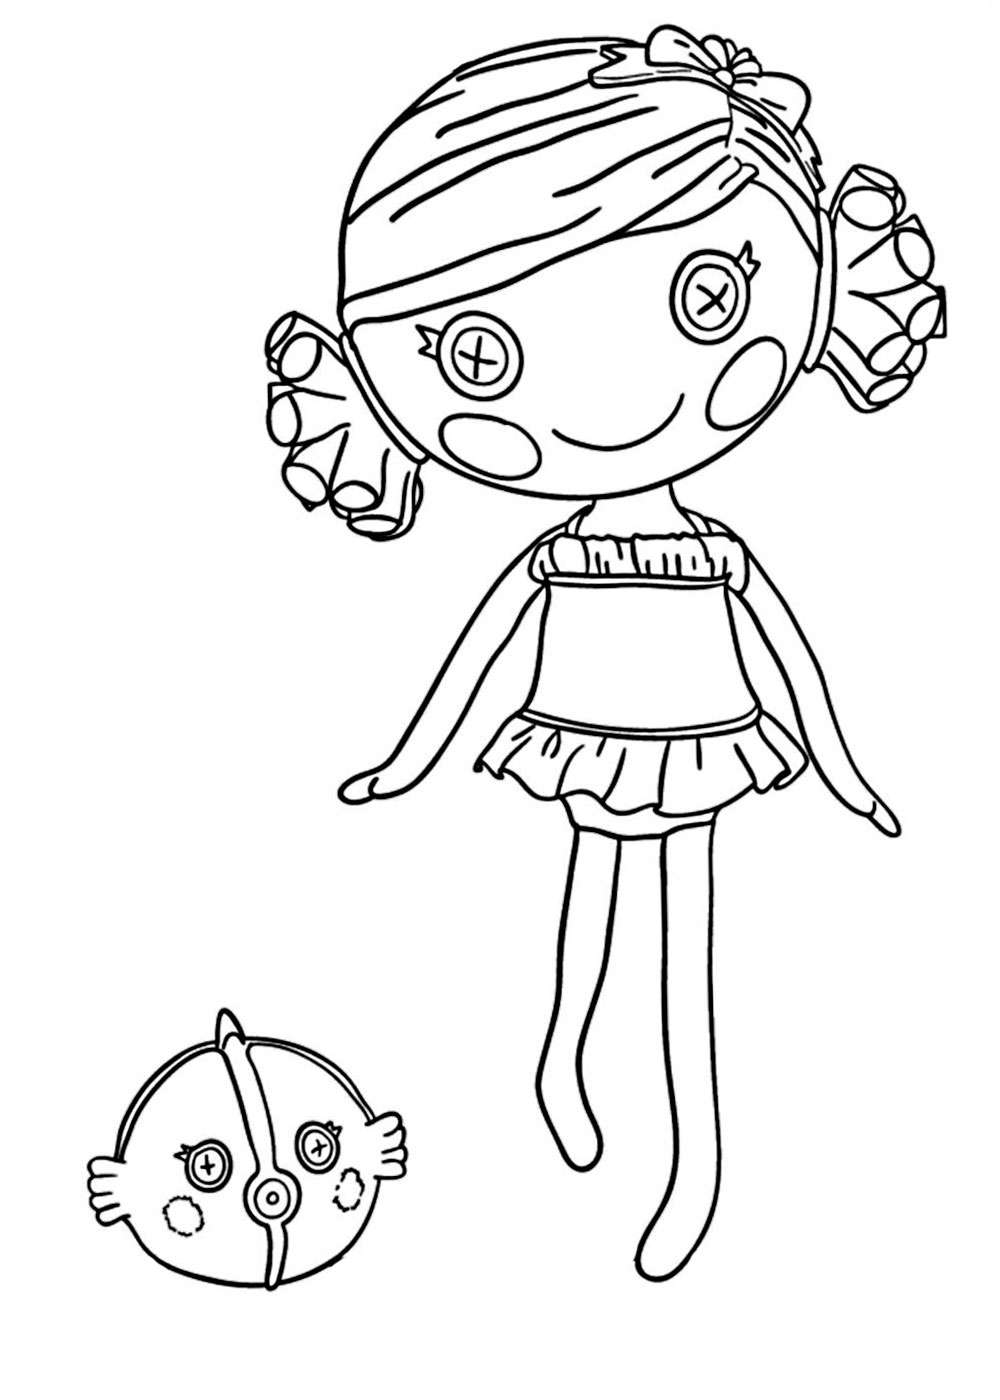 coloring pages lalaloopsy dolls lalaloopsy coloring pages for girls to print for free dolls pages coloring lalaloopsy